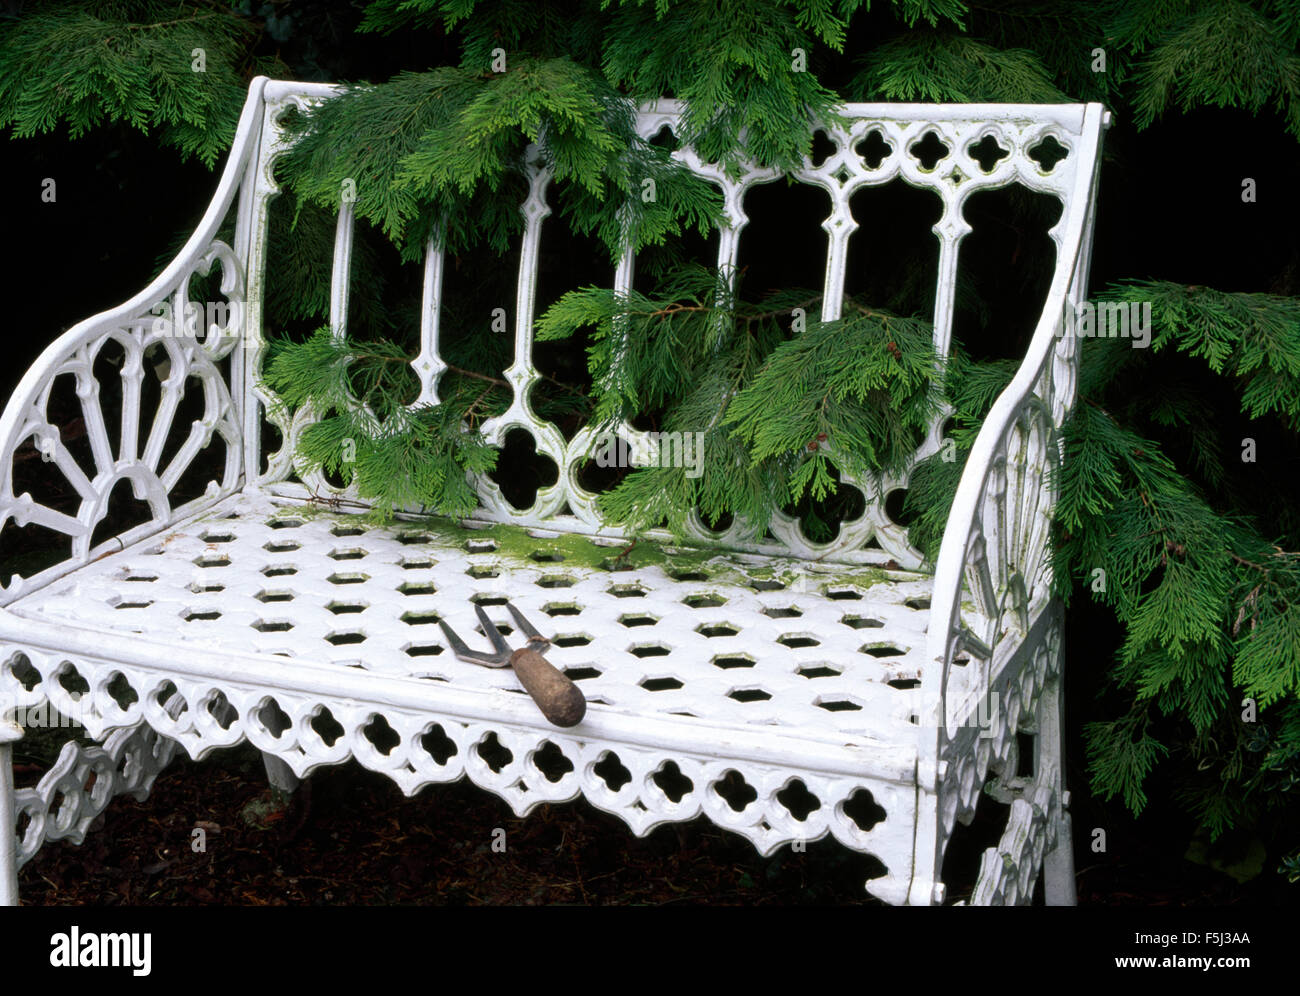 Awe Inspiring Small Garden Fork On A White Wrought Iron Garden Bench In Gamerscity Chair Design For Home Gamerscityorg